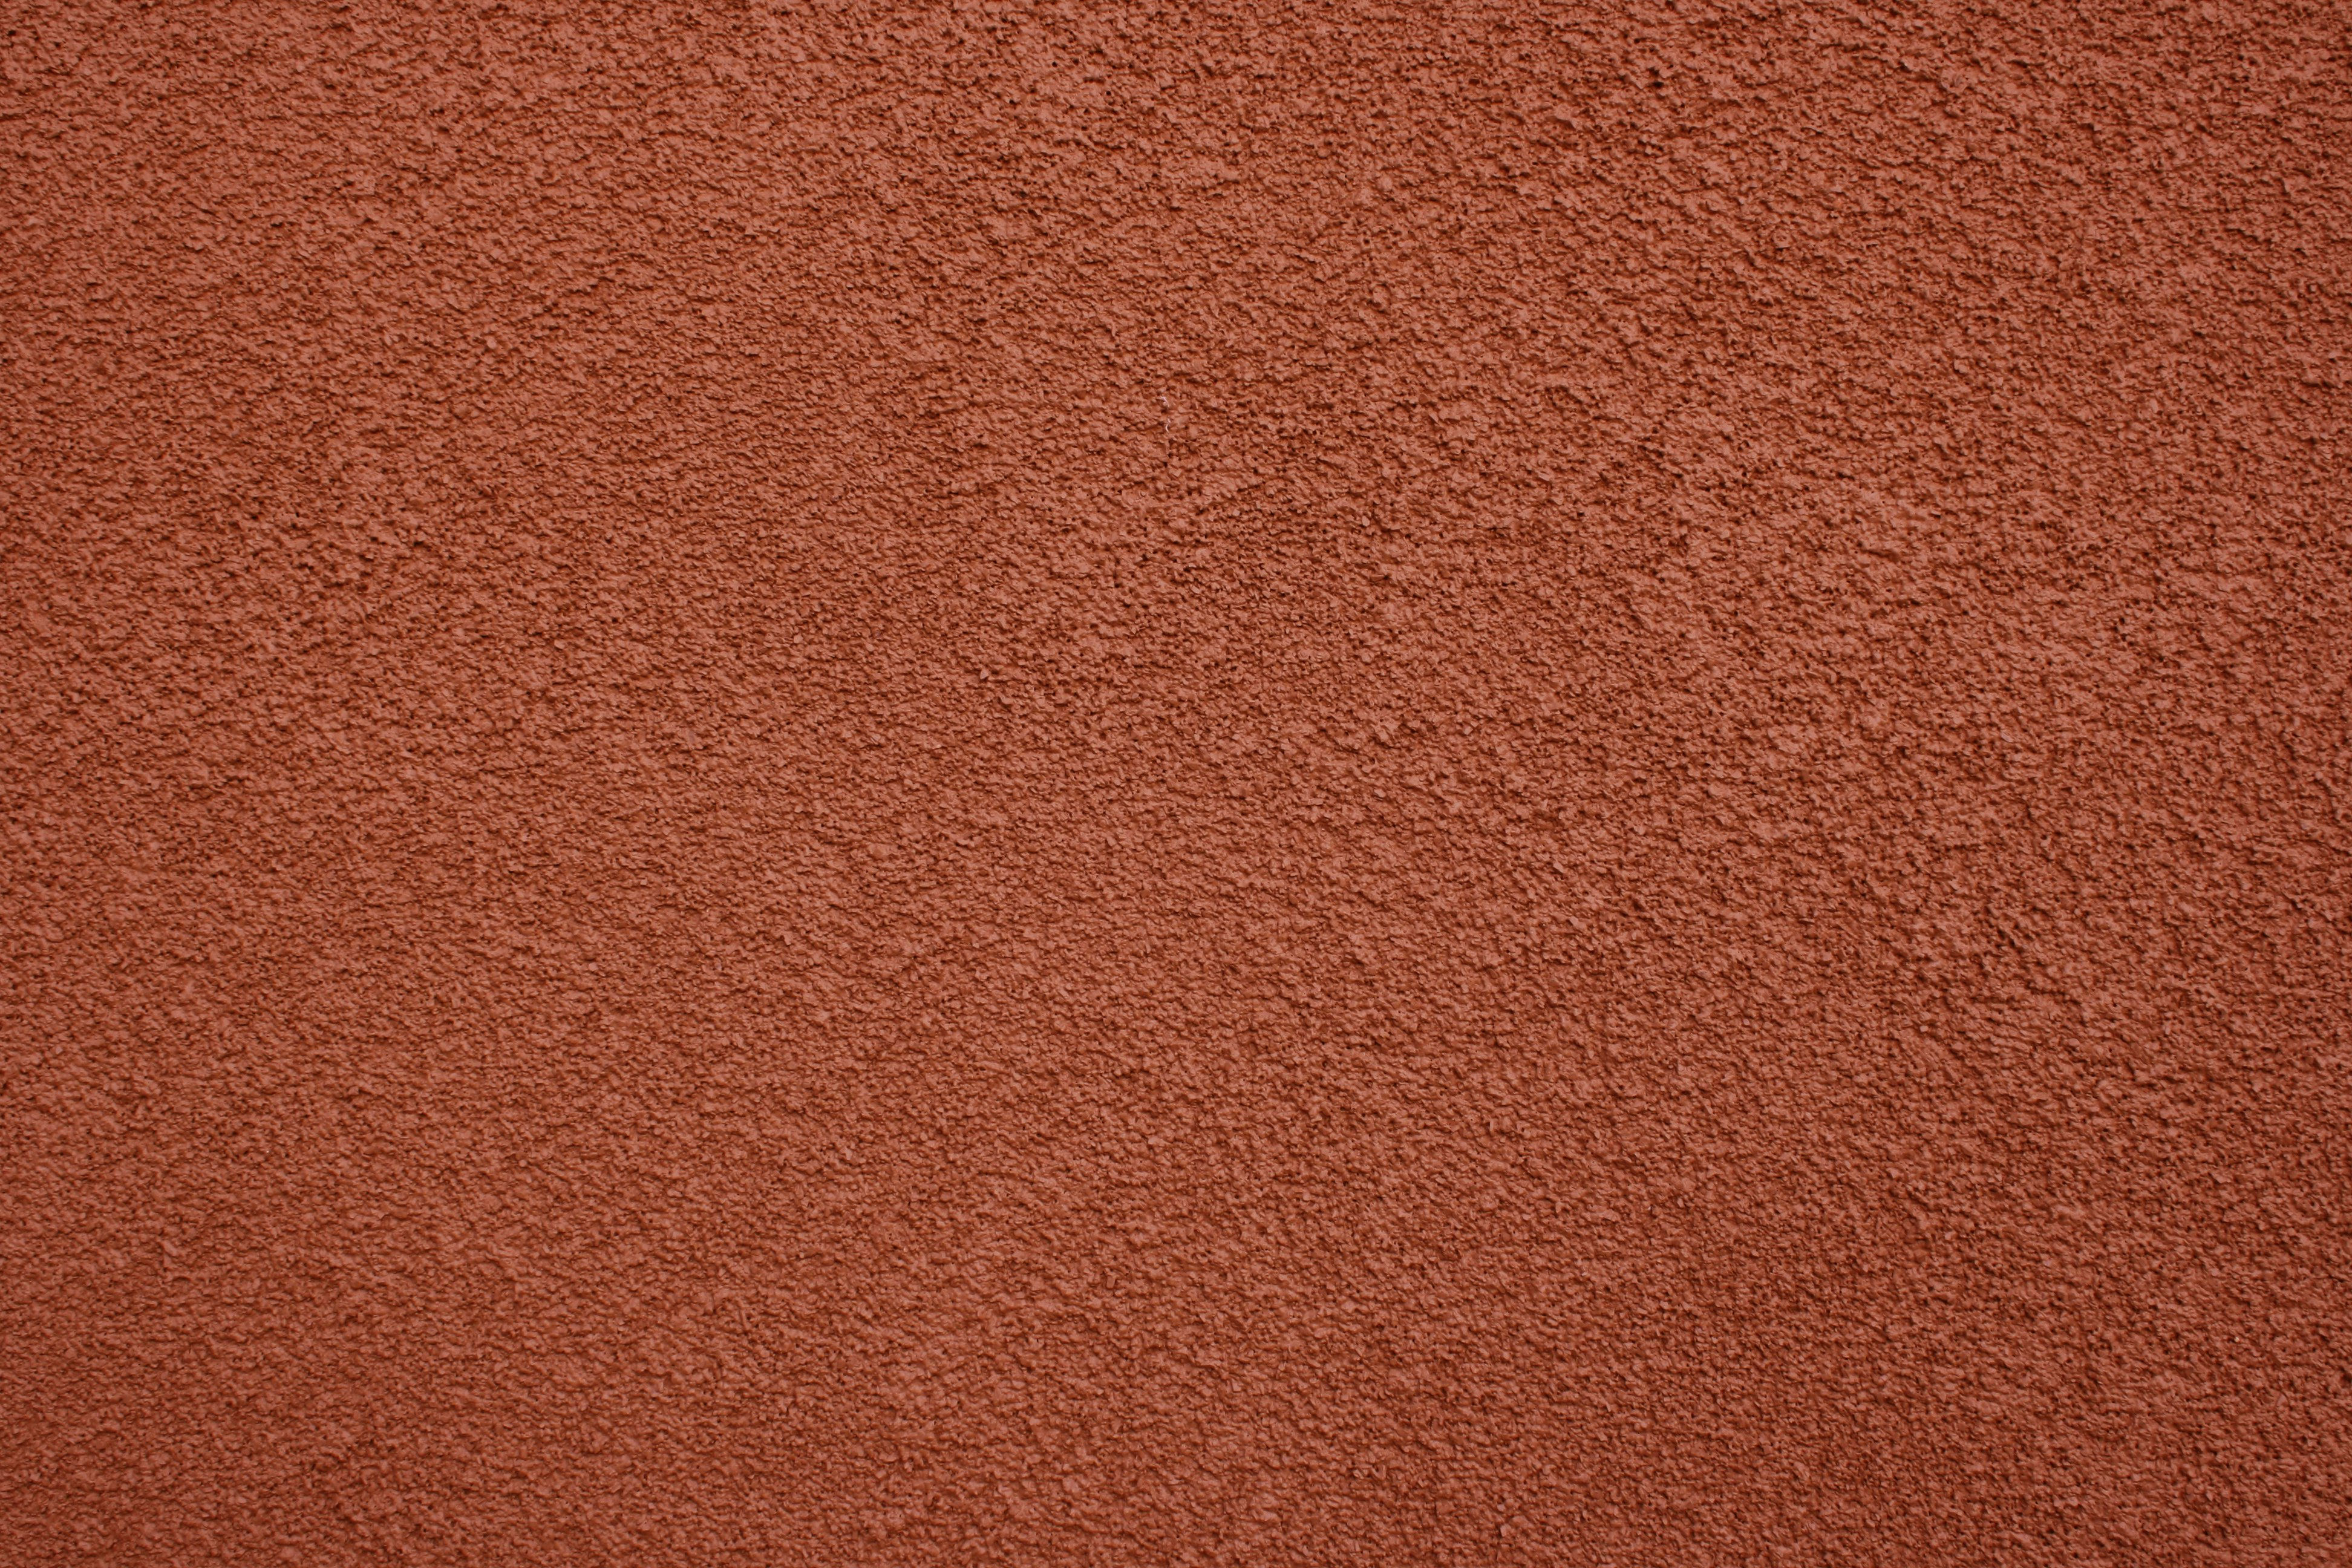 Terra Cotta Stucco Wall Texture Picture